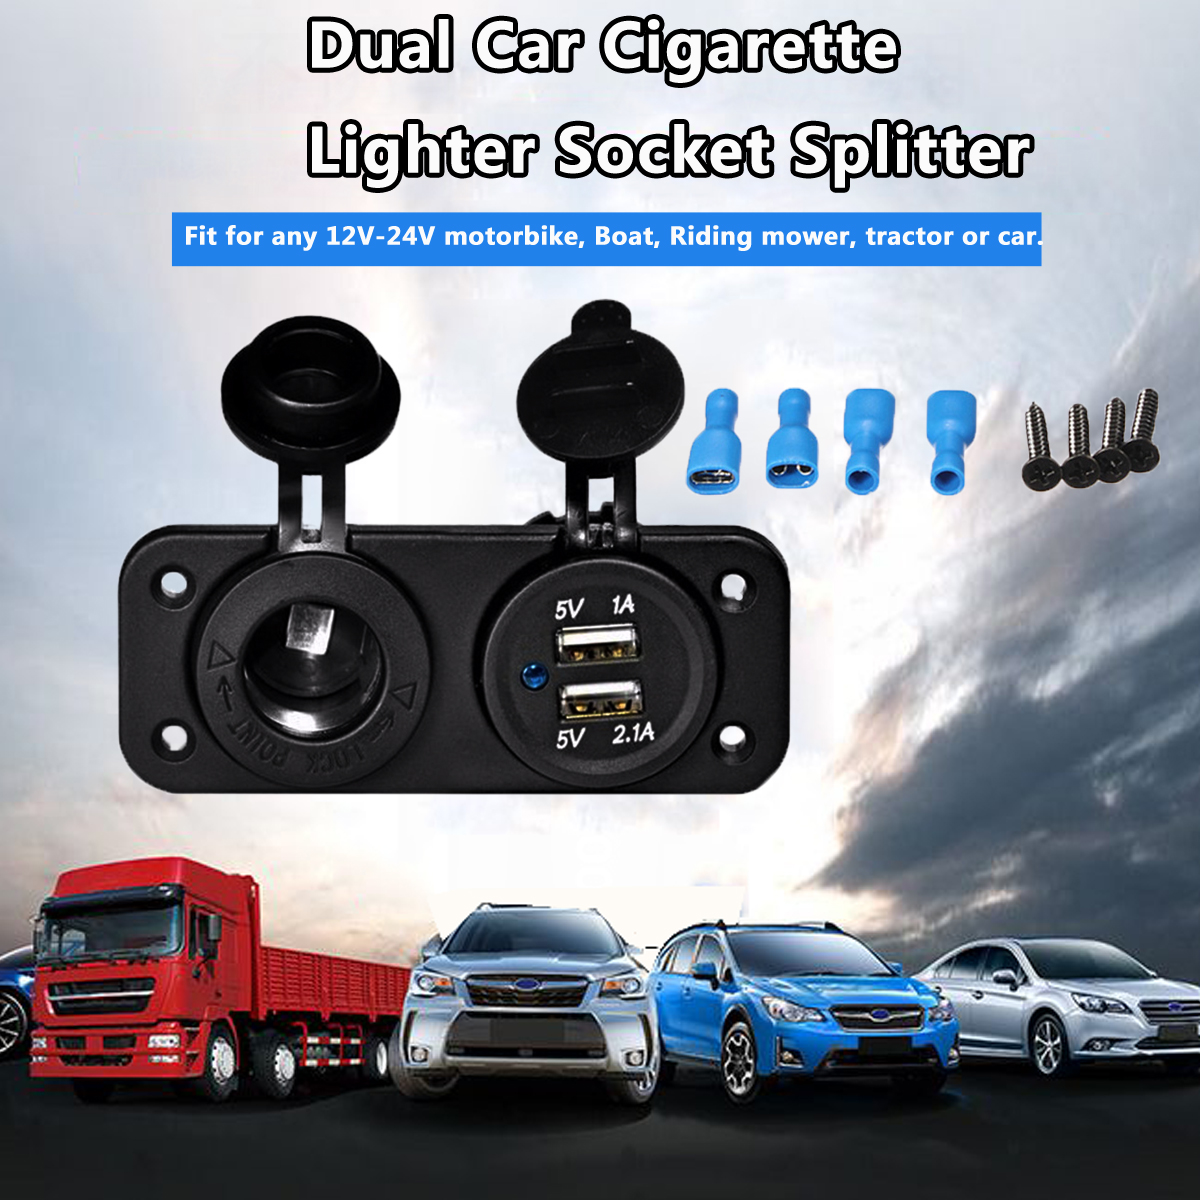 12V Dual USB Car Cigarette Lighter Socket Splitter 12V 2.1A&1A Charger Power Adapter Outlet Accessories high quality universal smart fuse circuit breaker protection dual usb port 5v 2 1a 1a car charger for mobile phones tablet pc